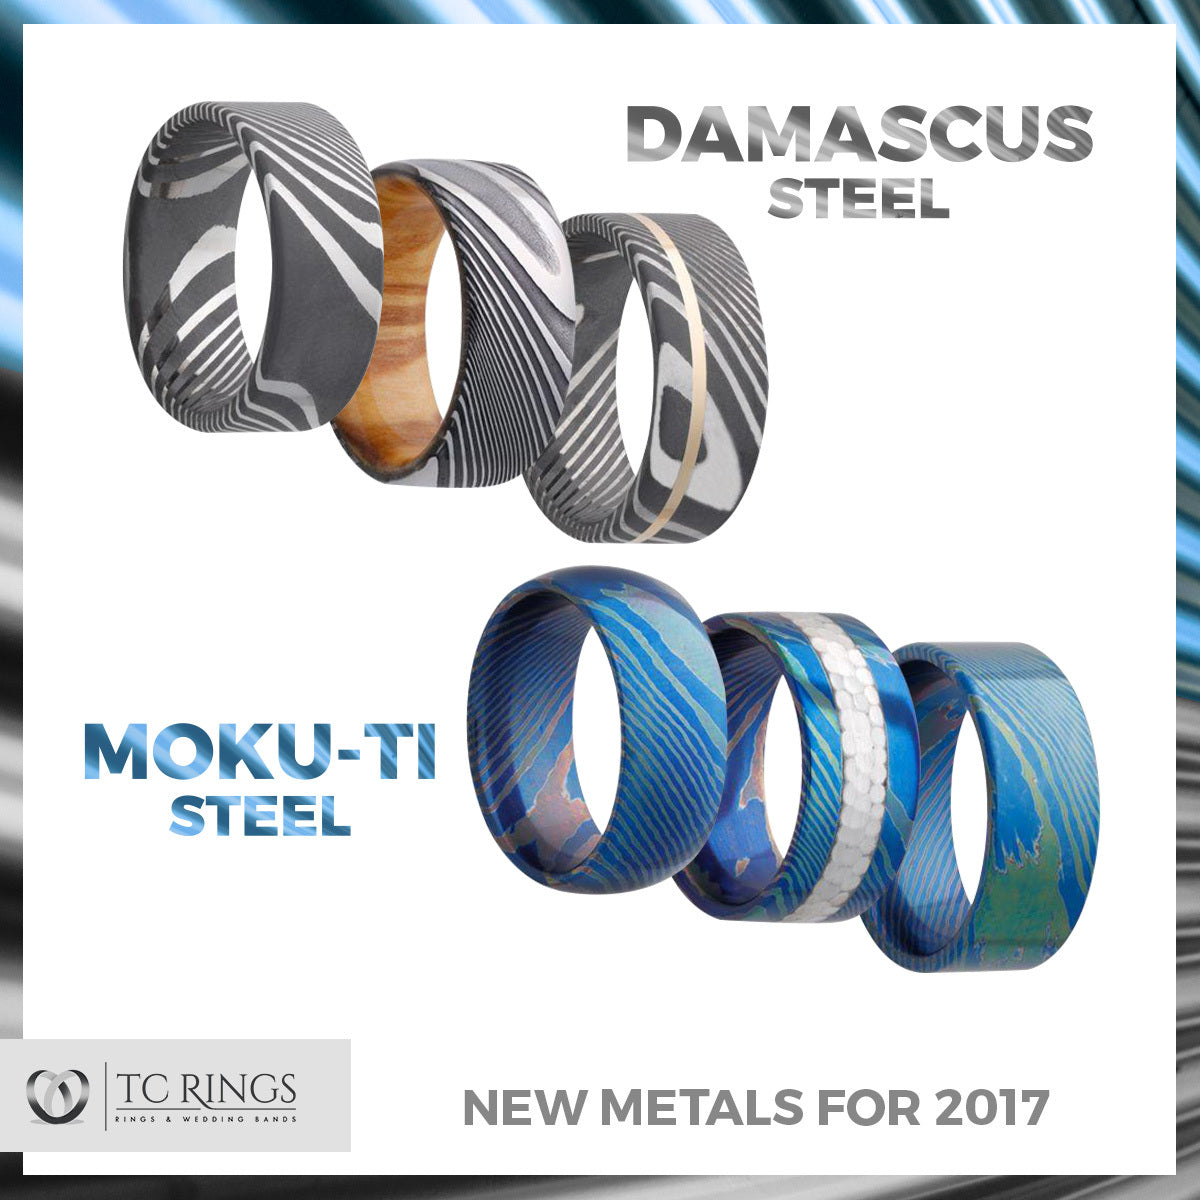 New Metals in 2017 — Moku-Ti & Damascus Steel